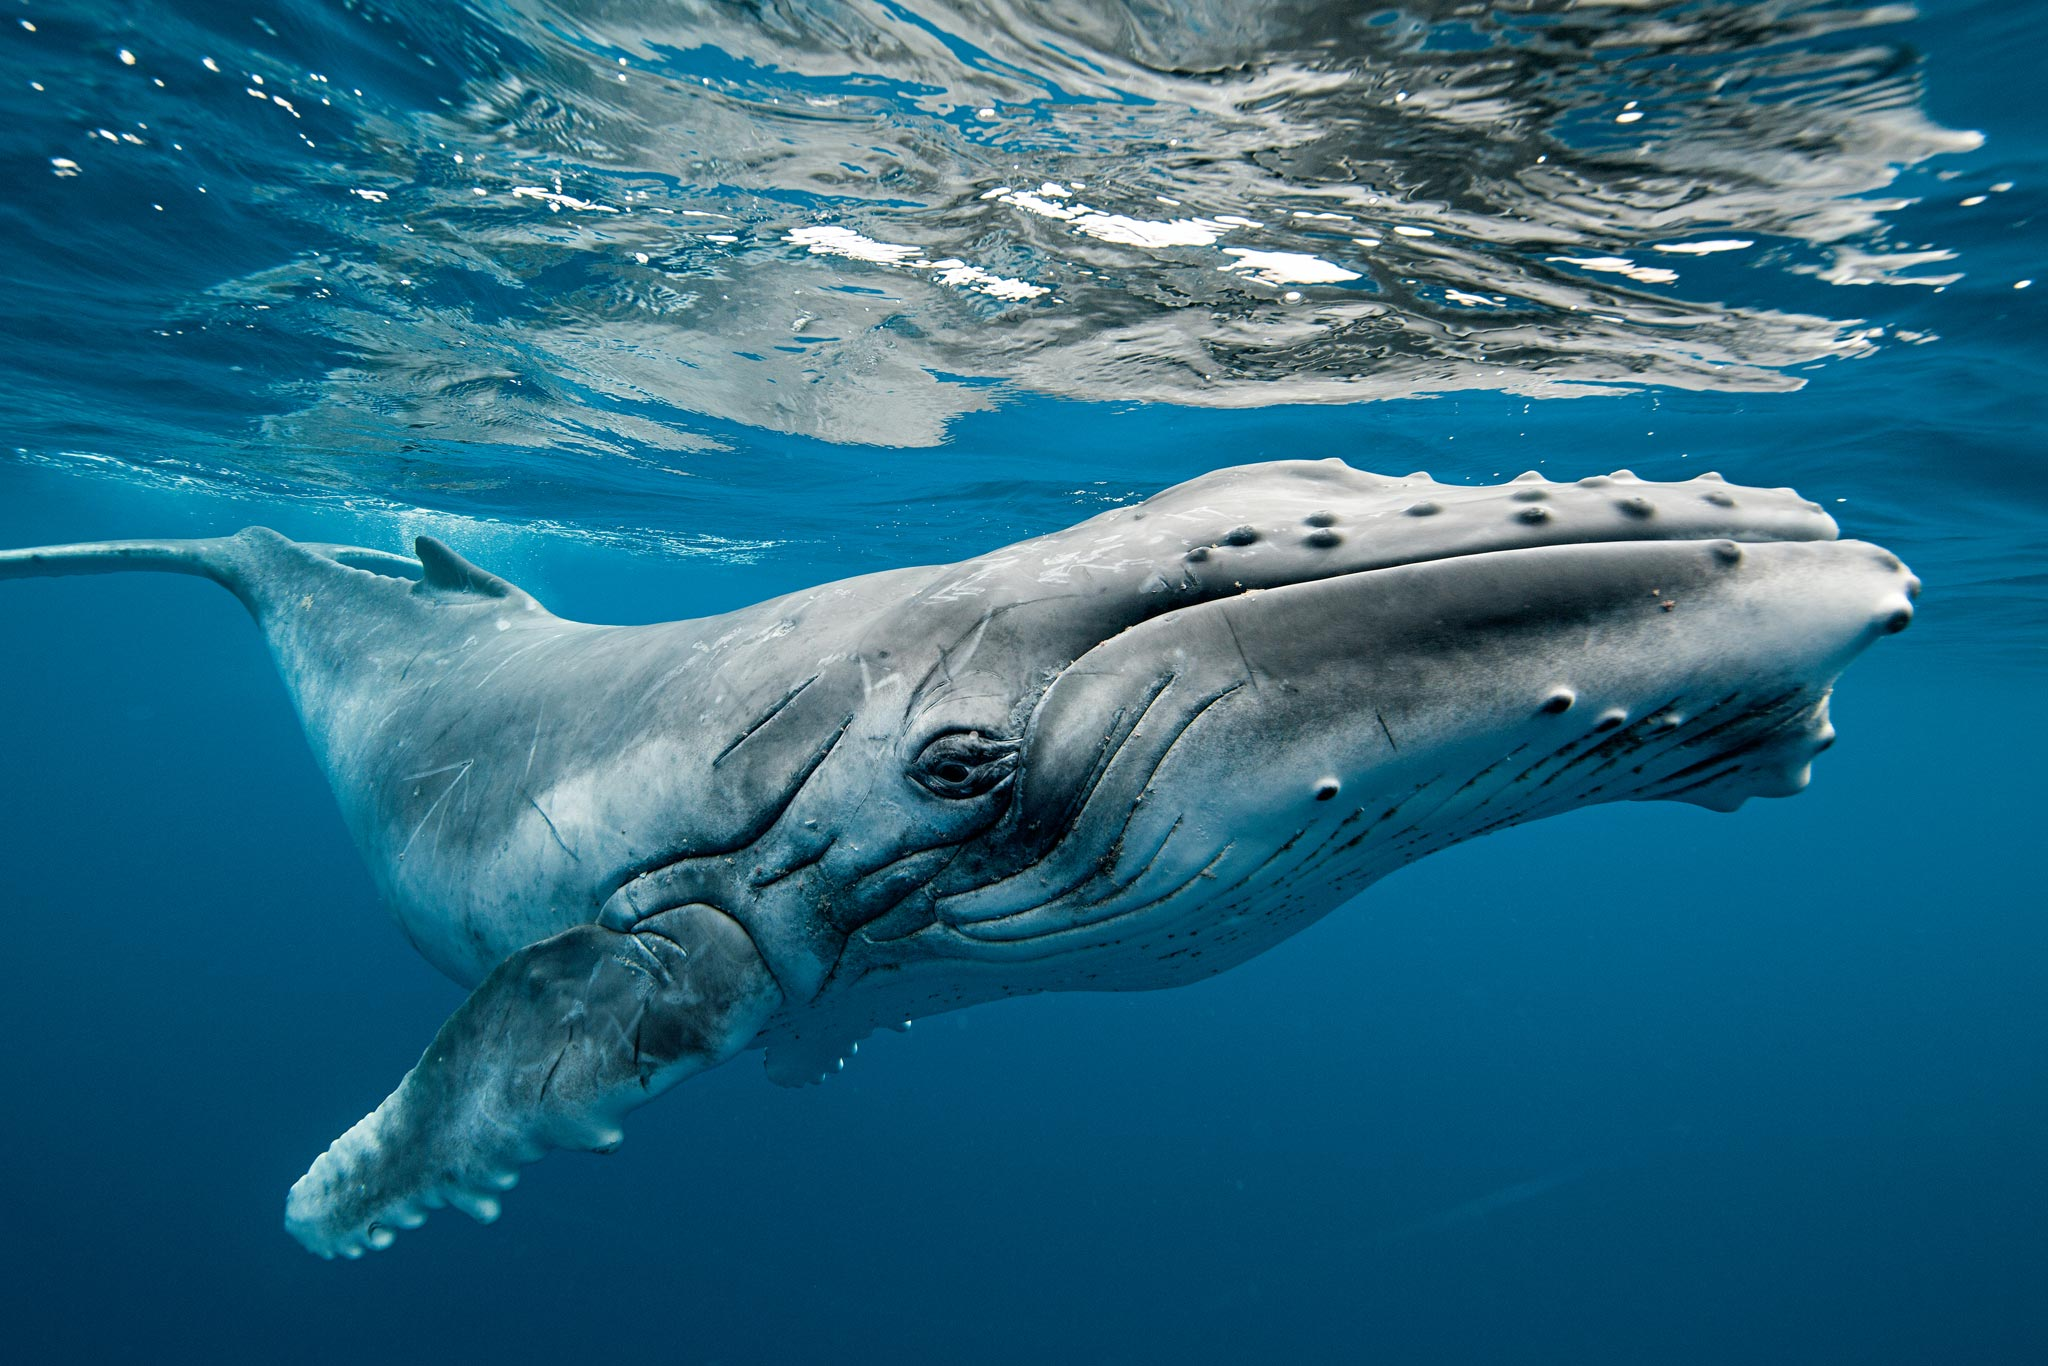 One million is also referred to as one thousand thousand, and a comma is used to separate the digits. Biomimicry, And What Humpback Whales & Electric